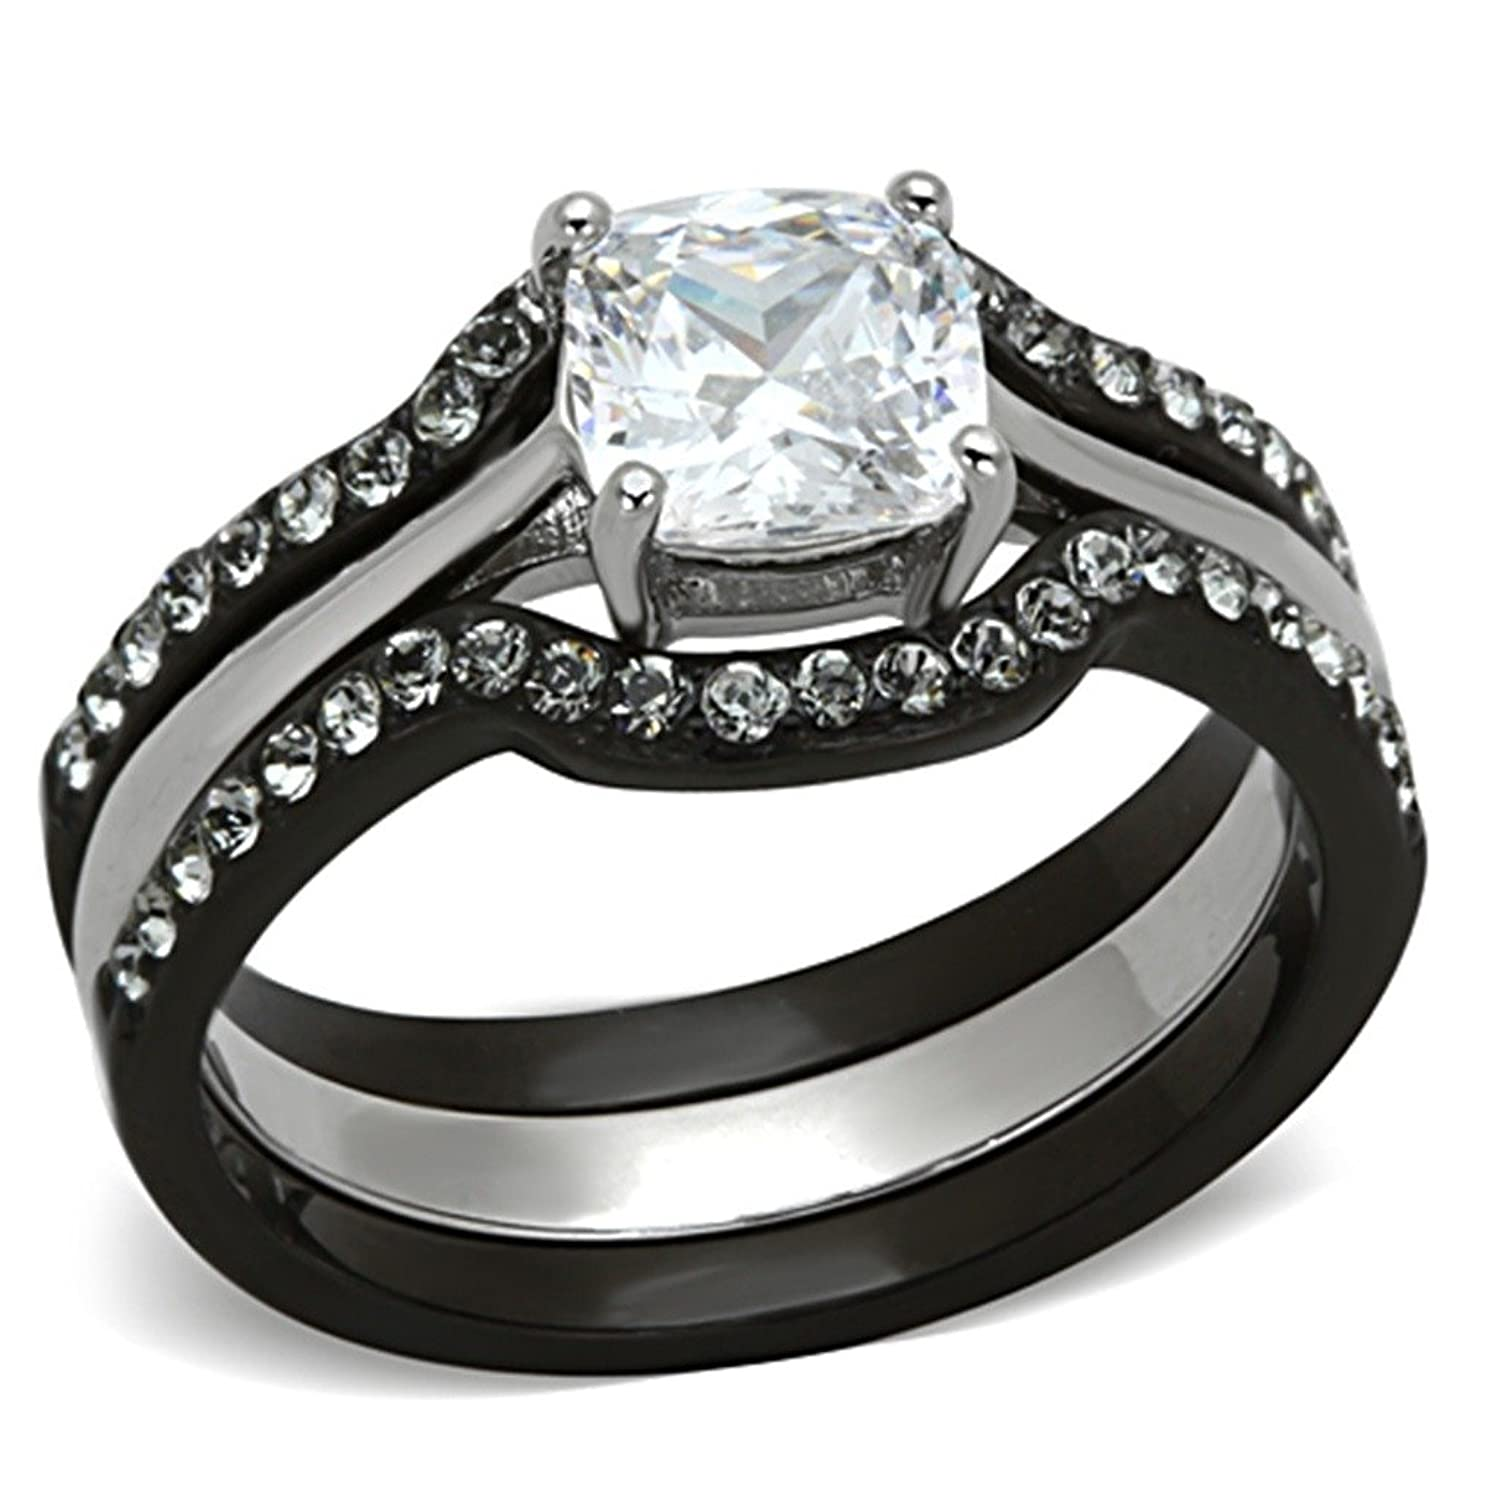 Amazon His & Hers 4 PCS Black IP Stainless Steel CZ Wedding